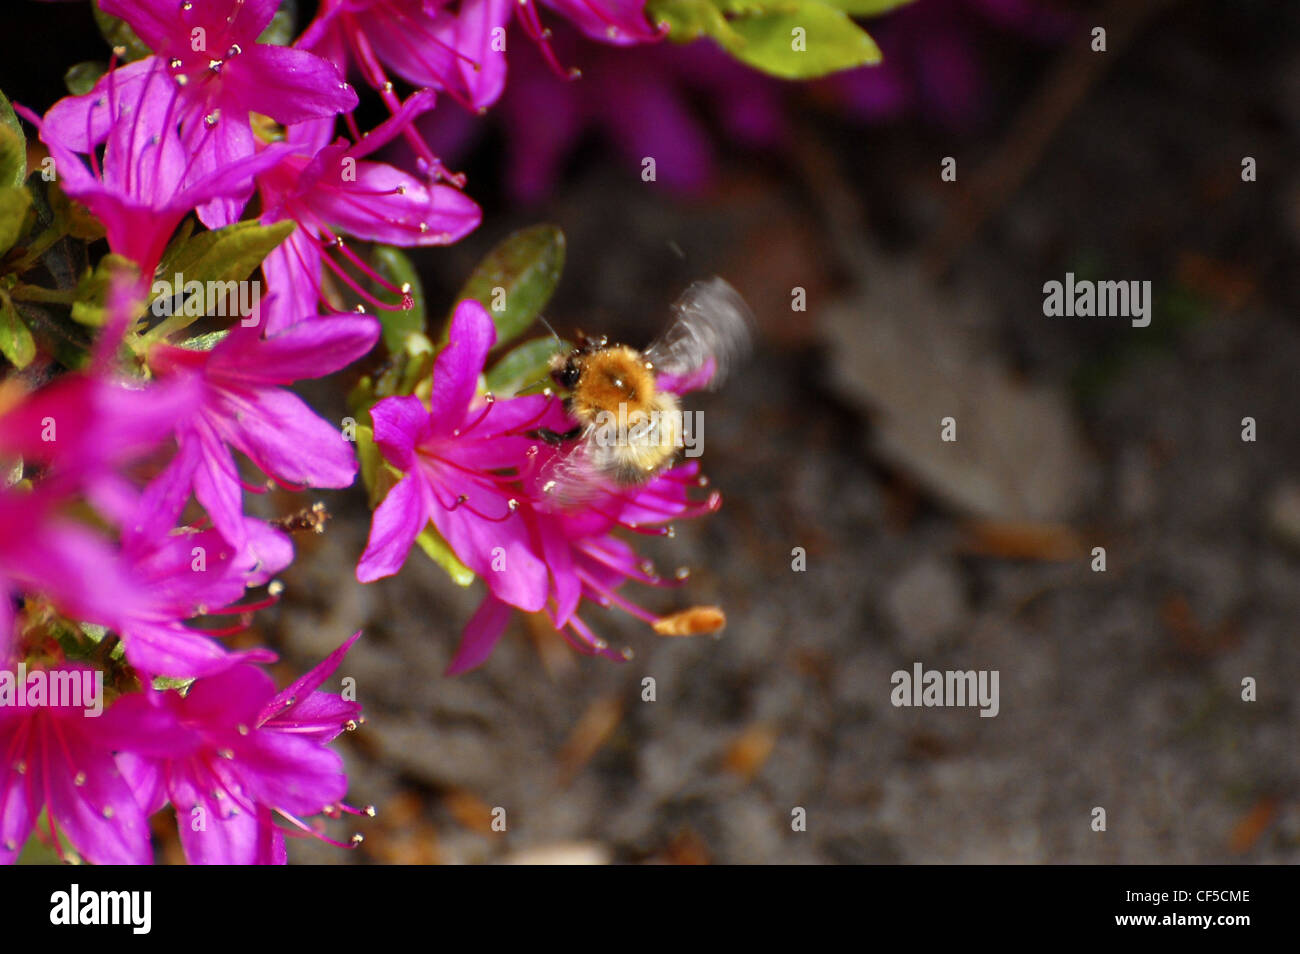 Golden furry backed bee with blurred wings on pink flowers - Stock Image